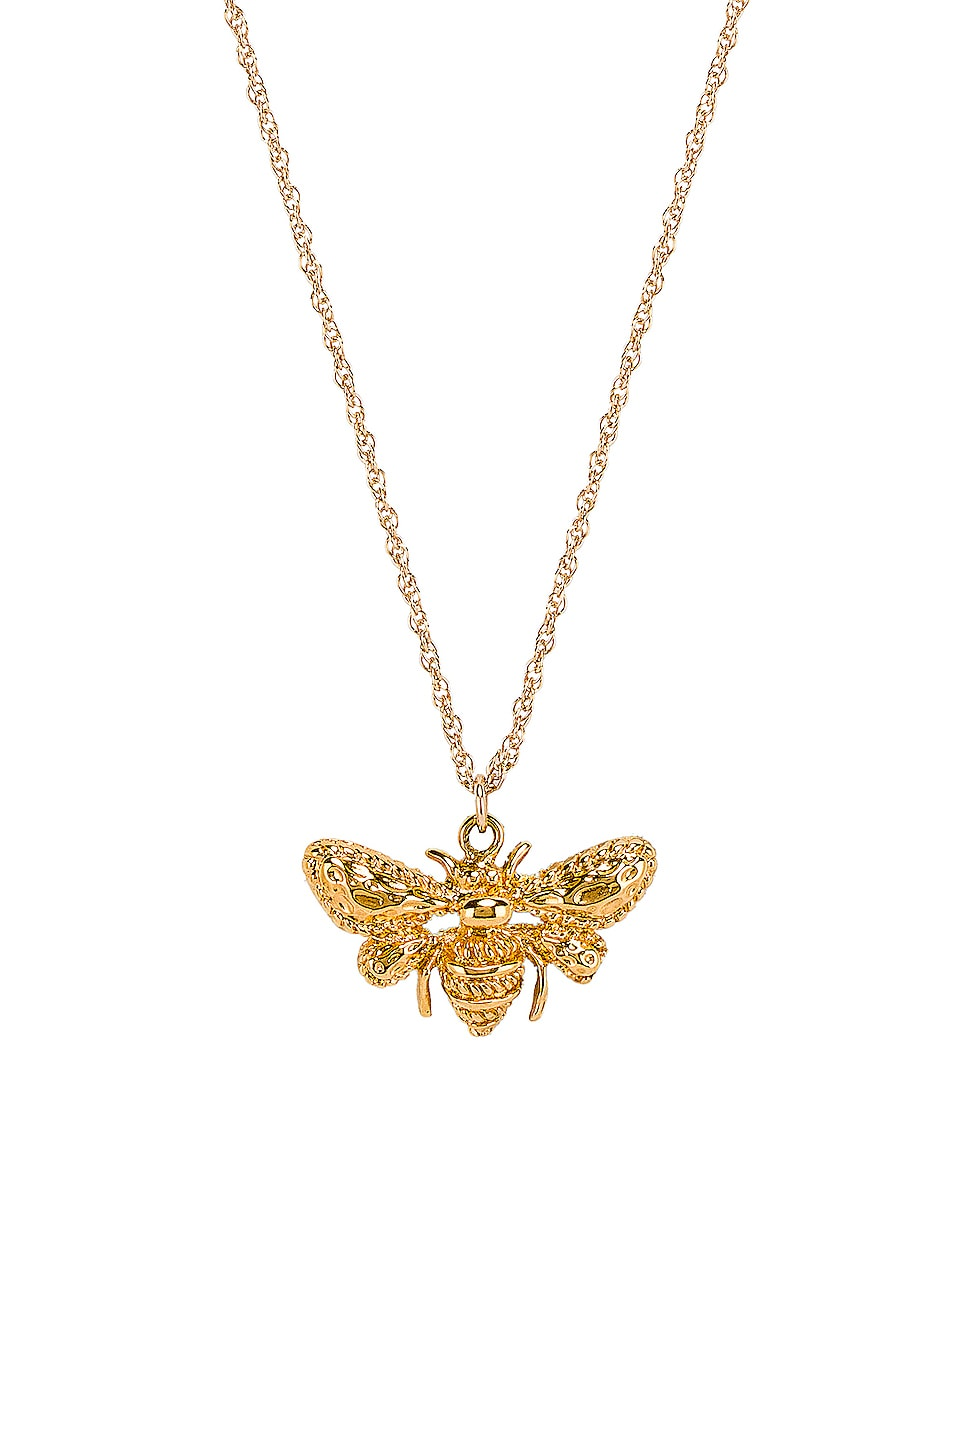 Natalie B Jewelry Queen Bee Necklace in Gold